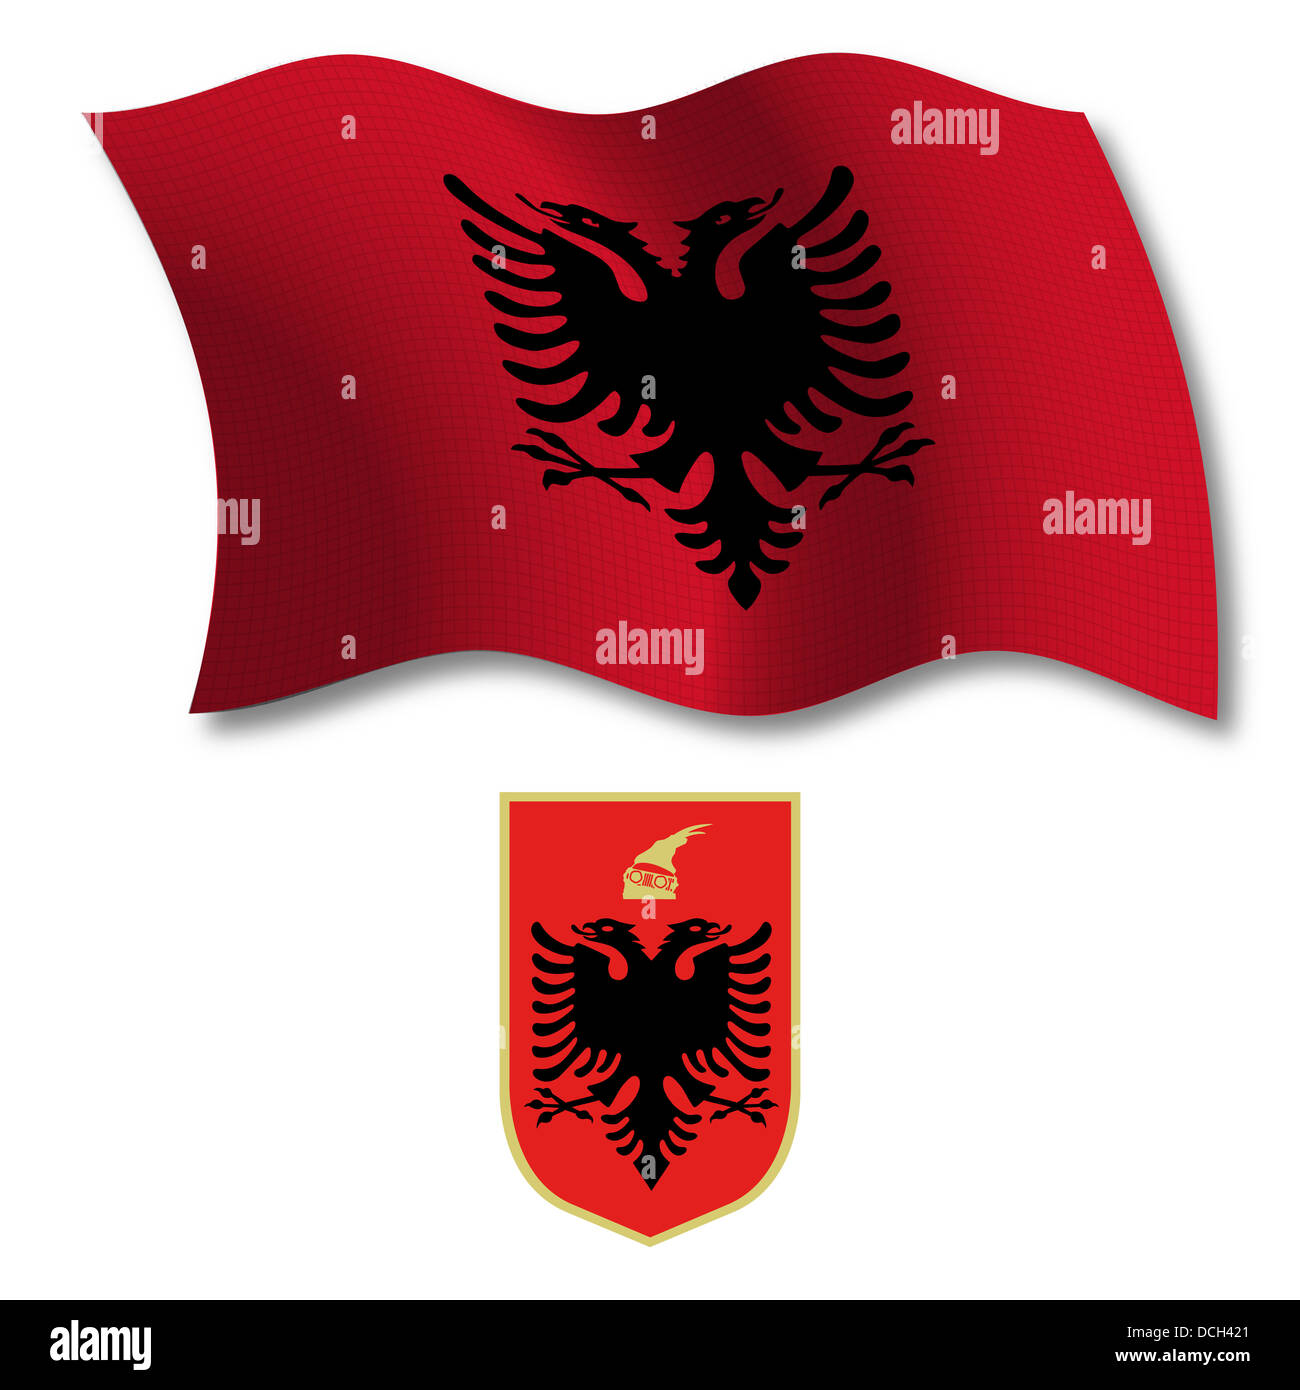 albania shadowed textured wavy flag and coat of arms against white background, vector art illustration, image has - Stock Image